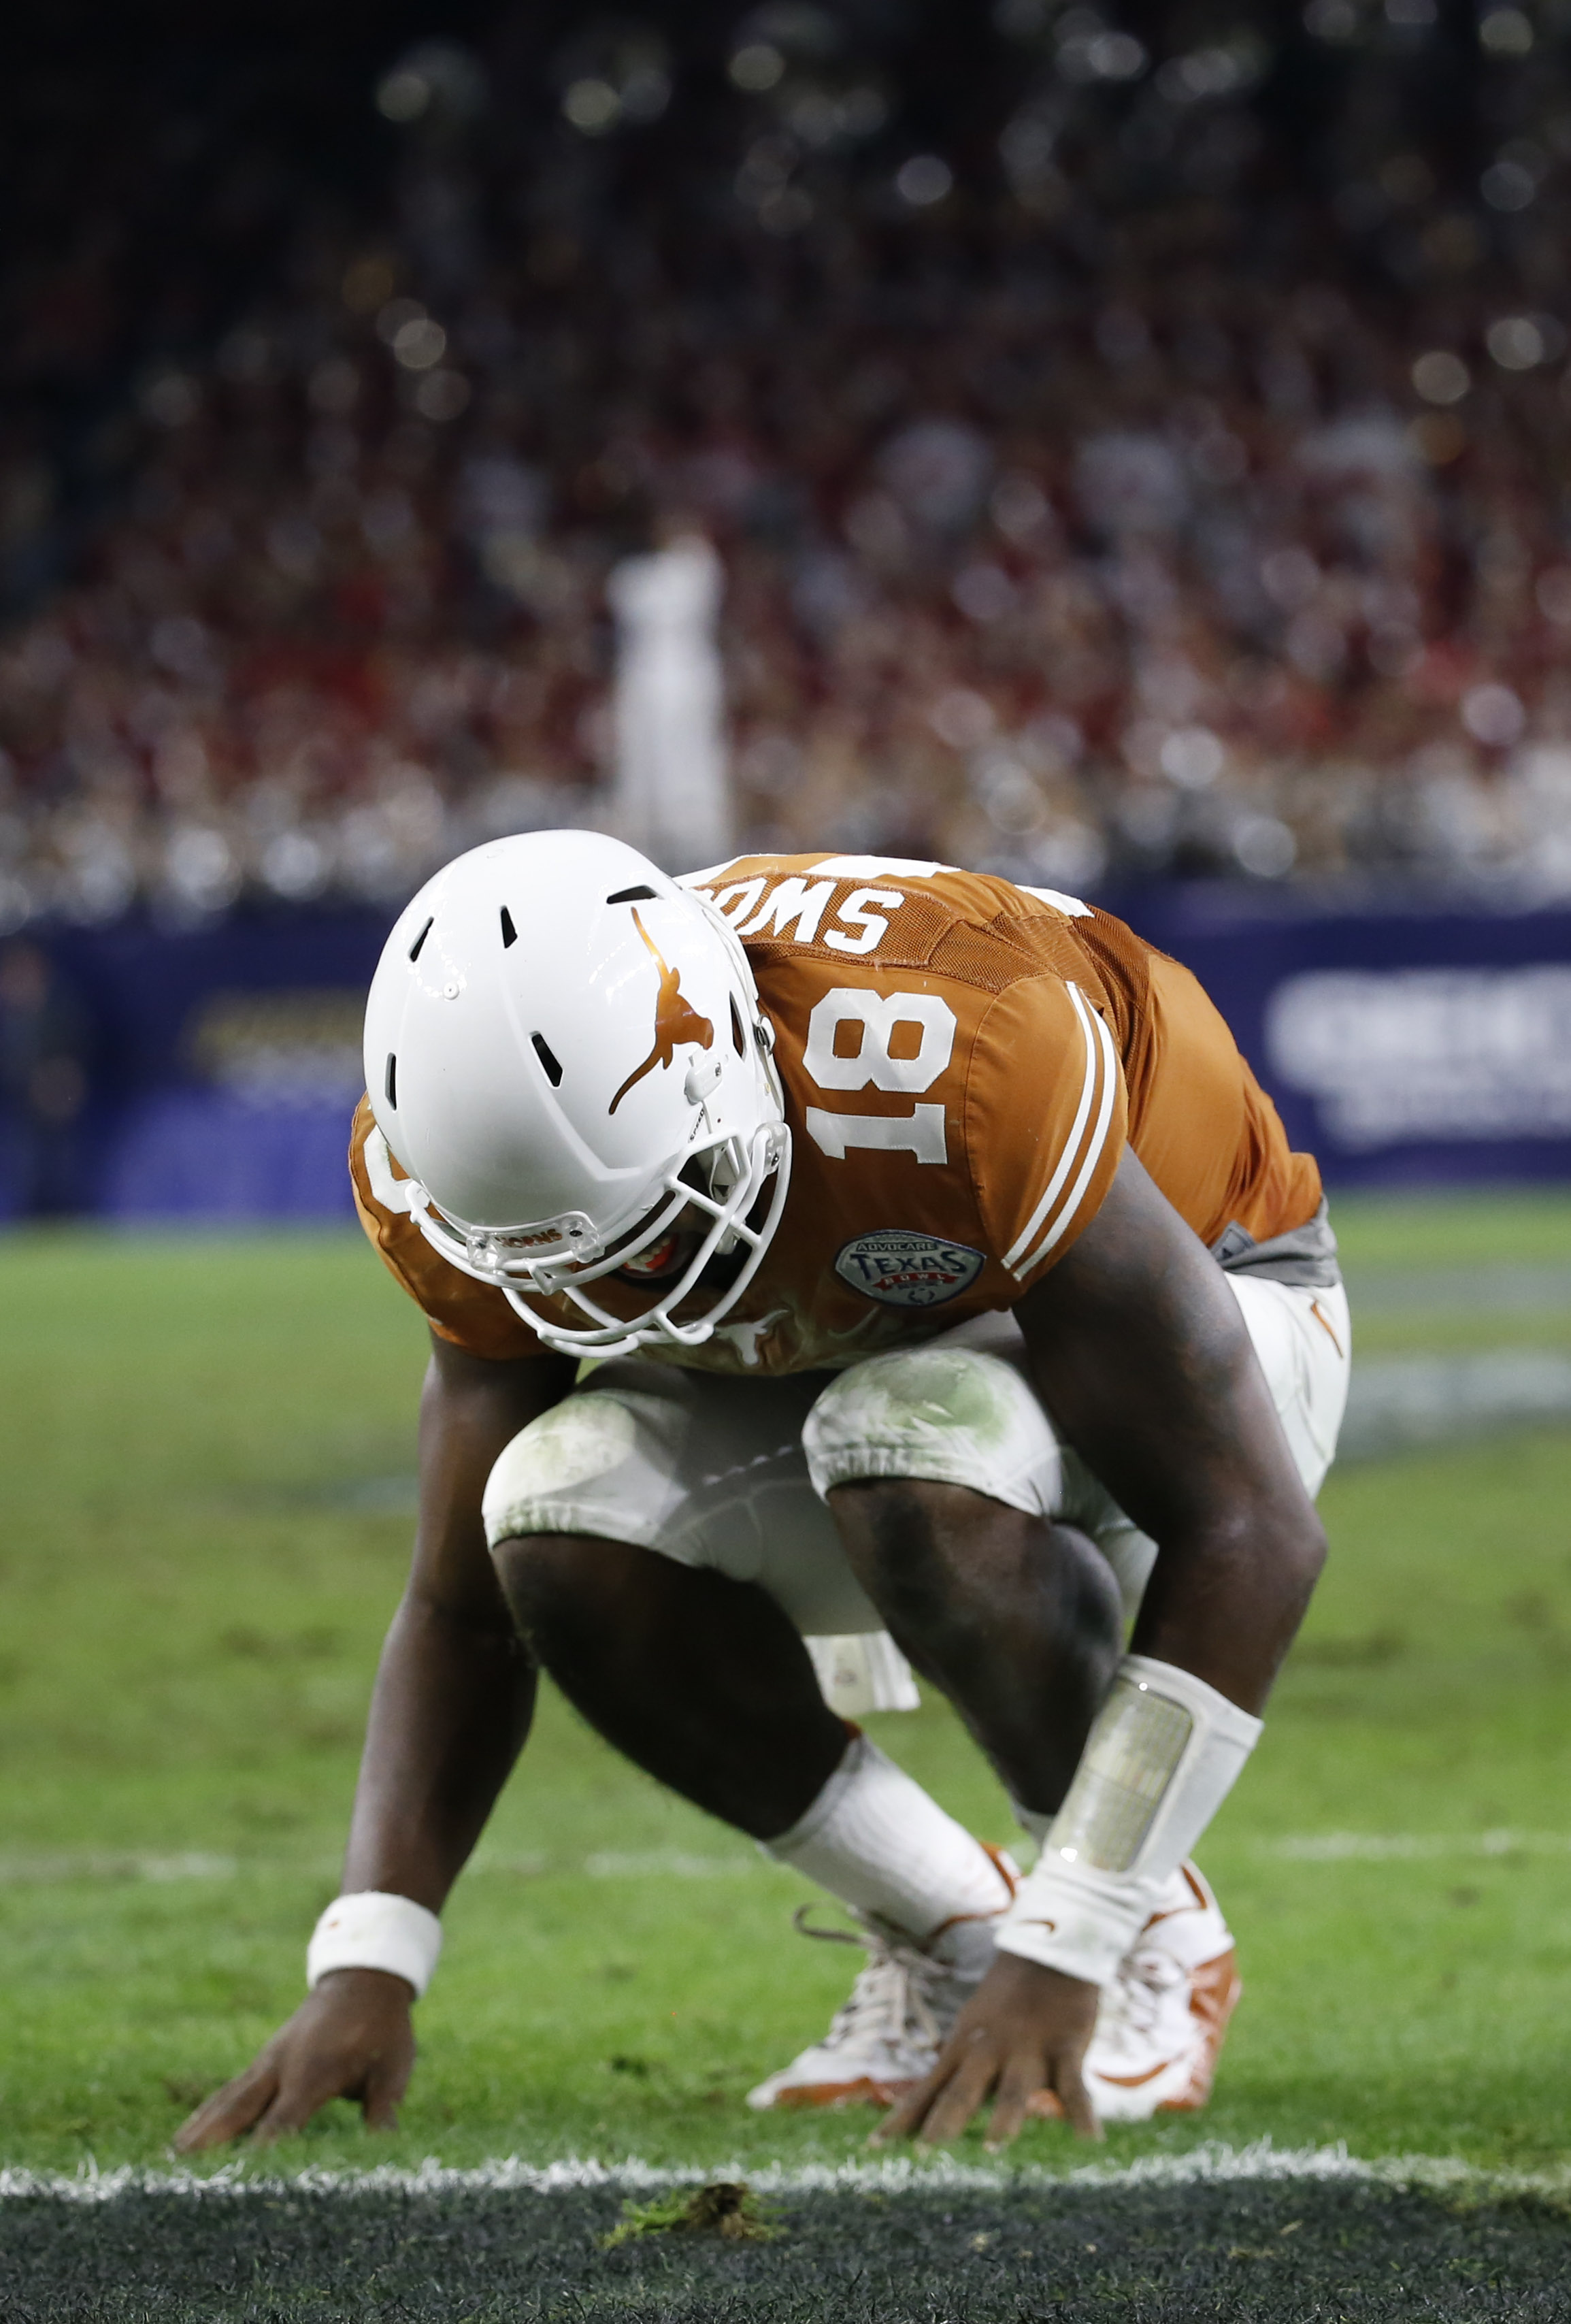 The UT QB covered more ground in this crouch than his team covered on most of their plays